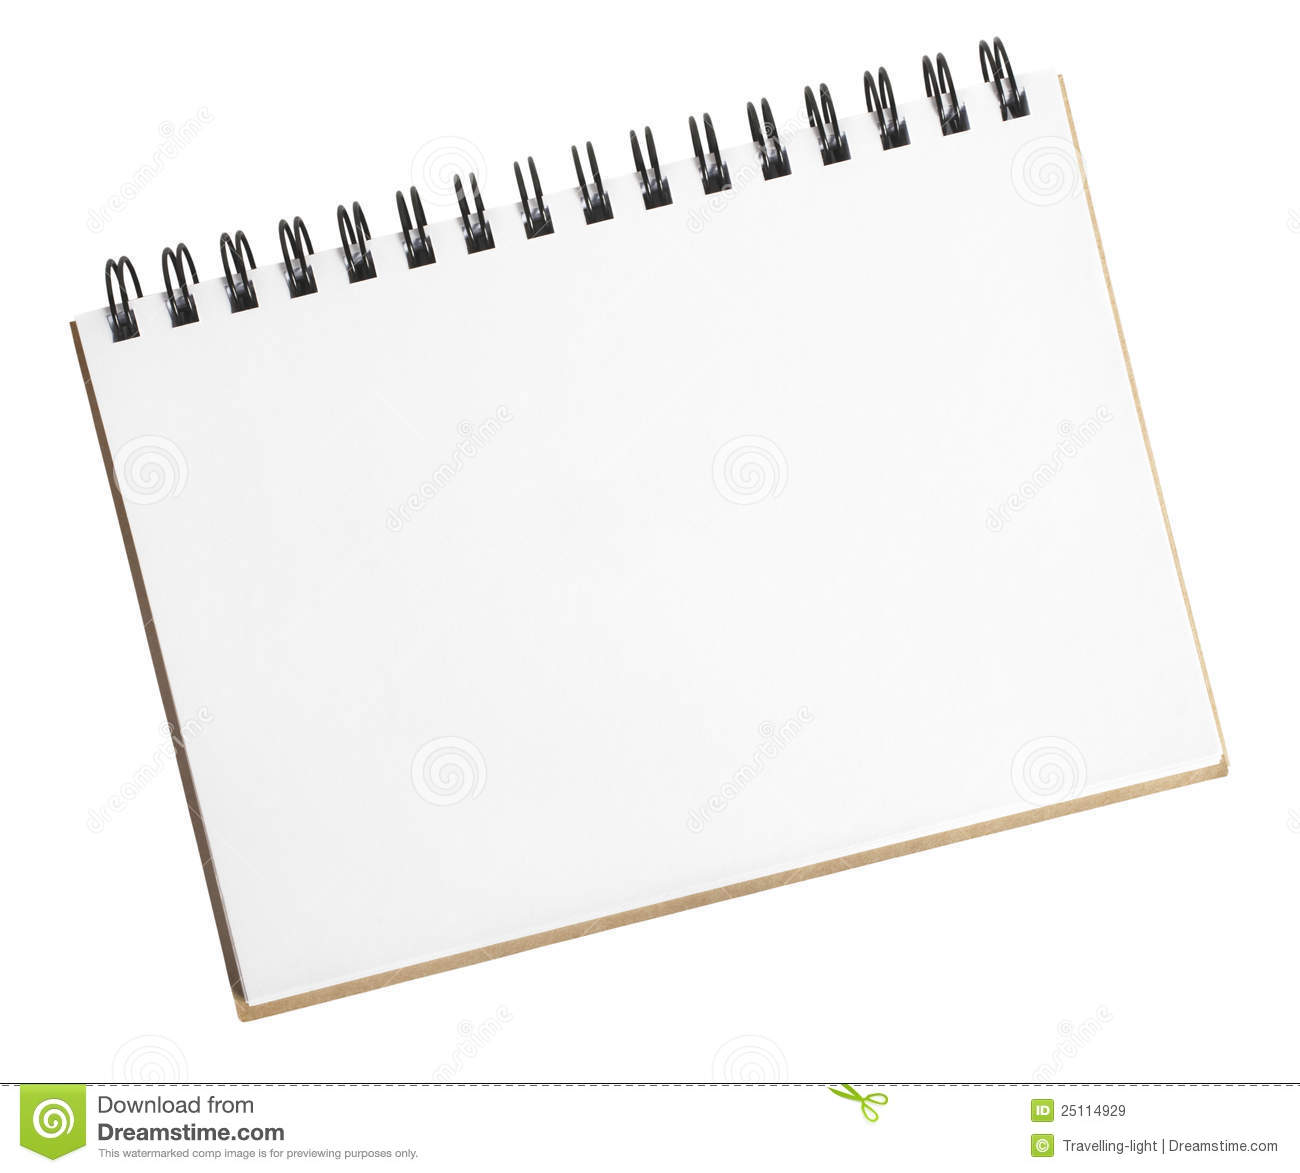 Small Sketch Pad Royalty Free Stock Images - Image: 25114929